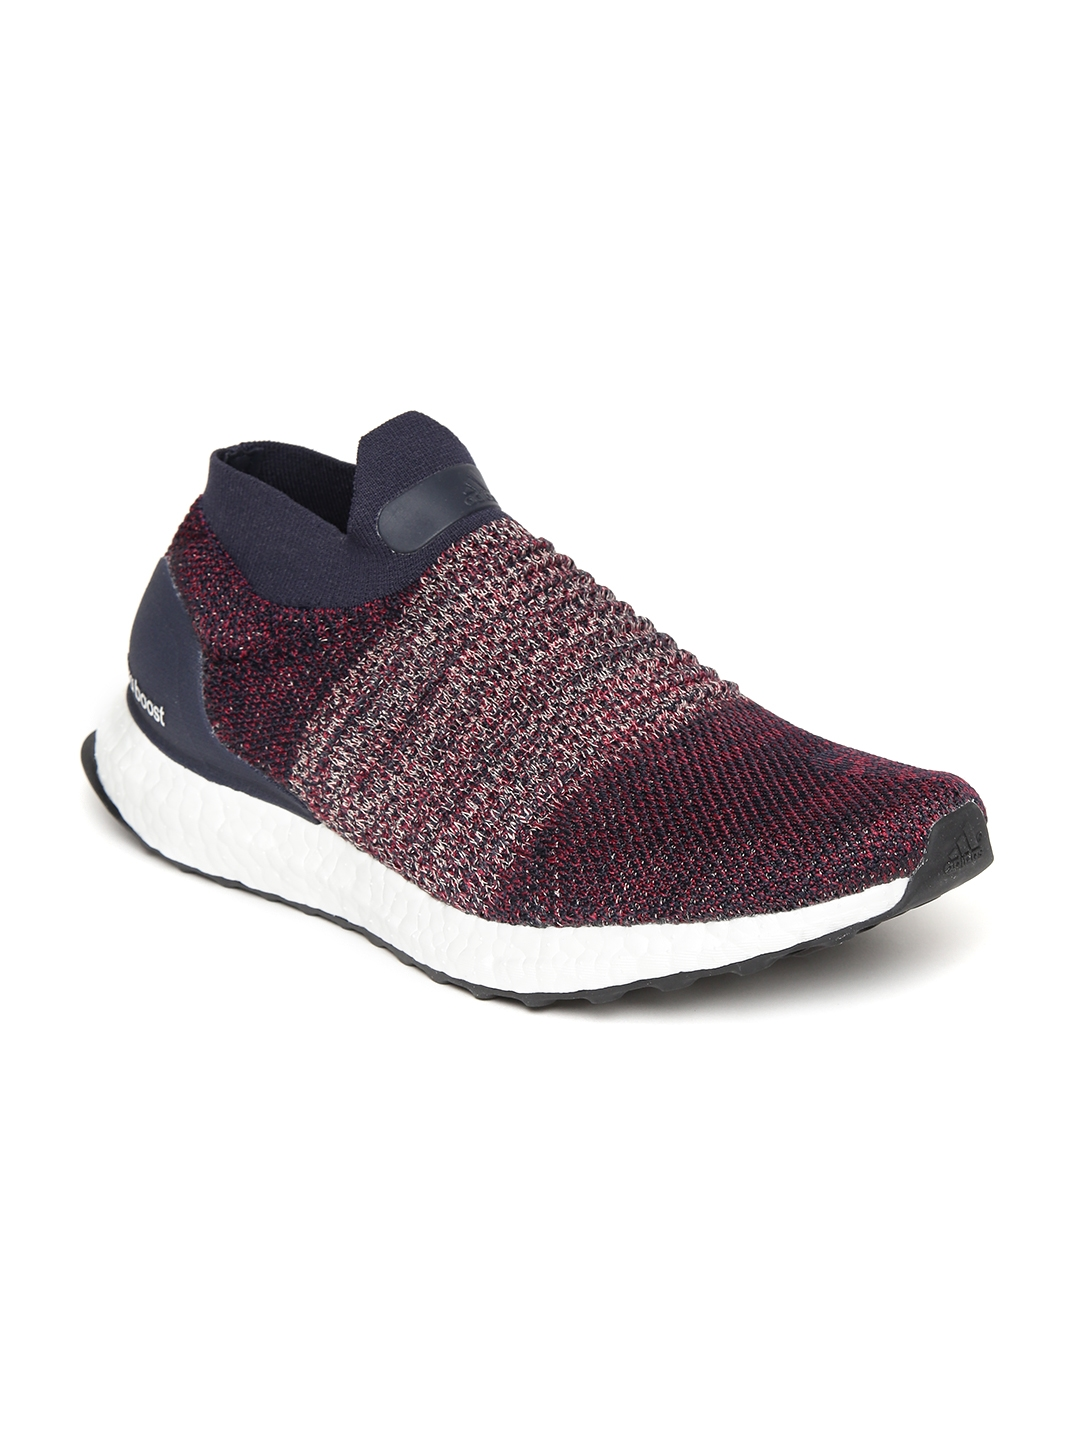 1507bdc83a04 Buy ADIDAS Women Burgundy   Navy Ultraboost Laceless Running Shoes ...